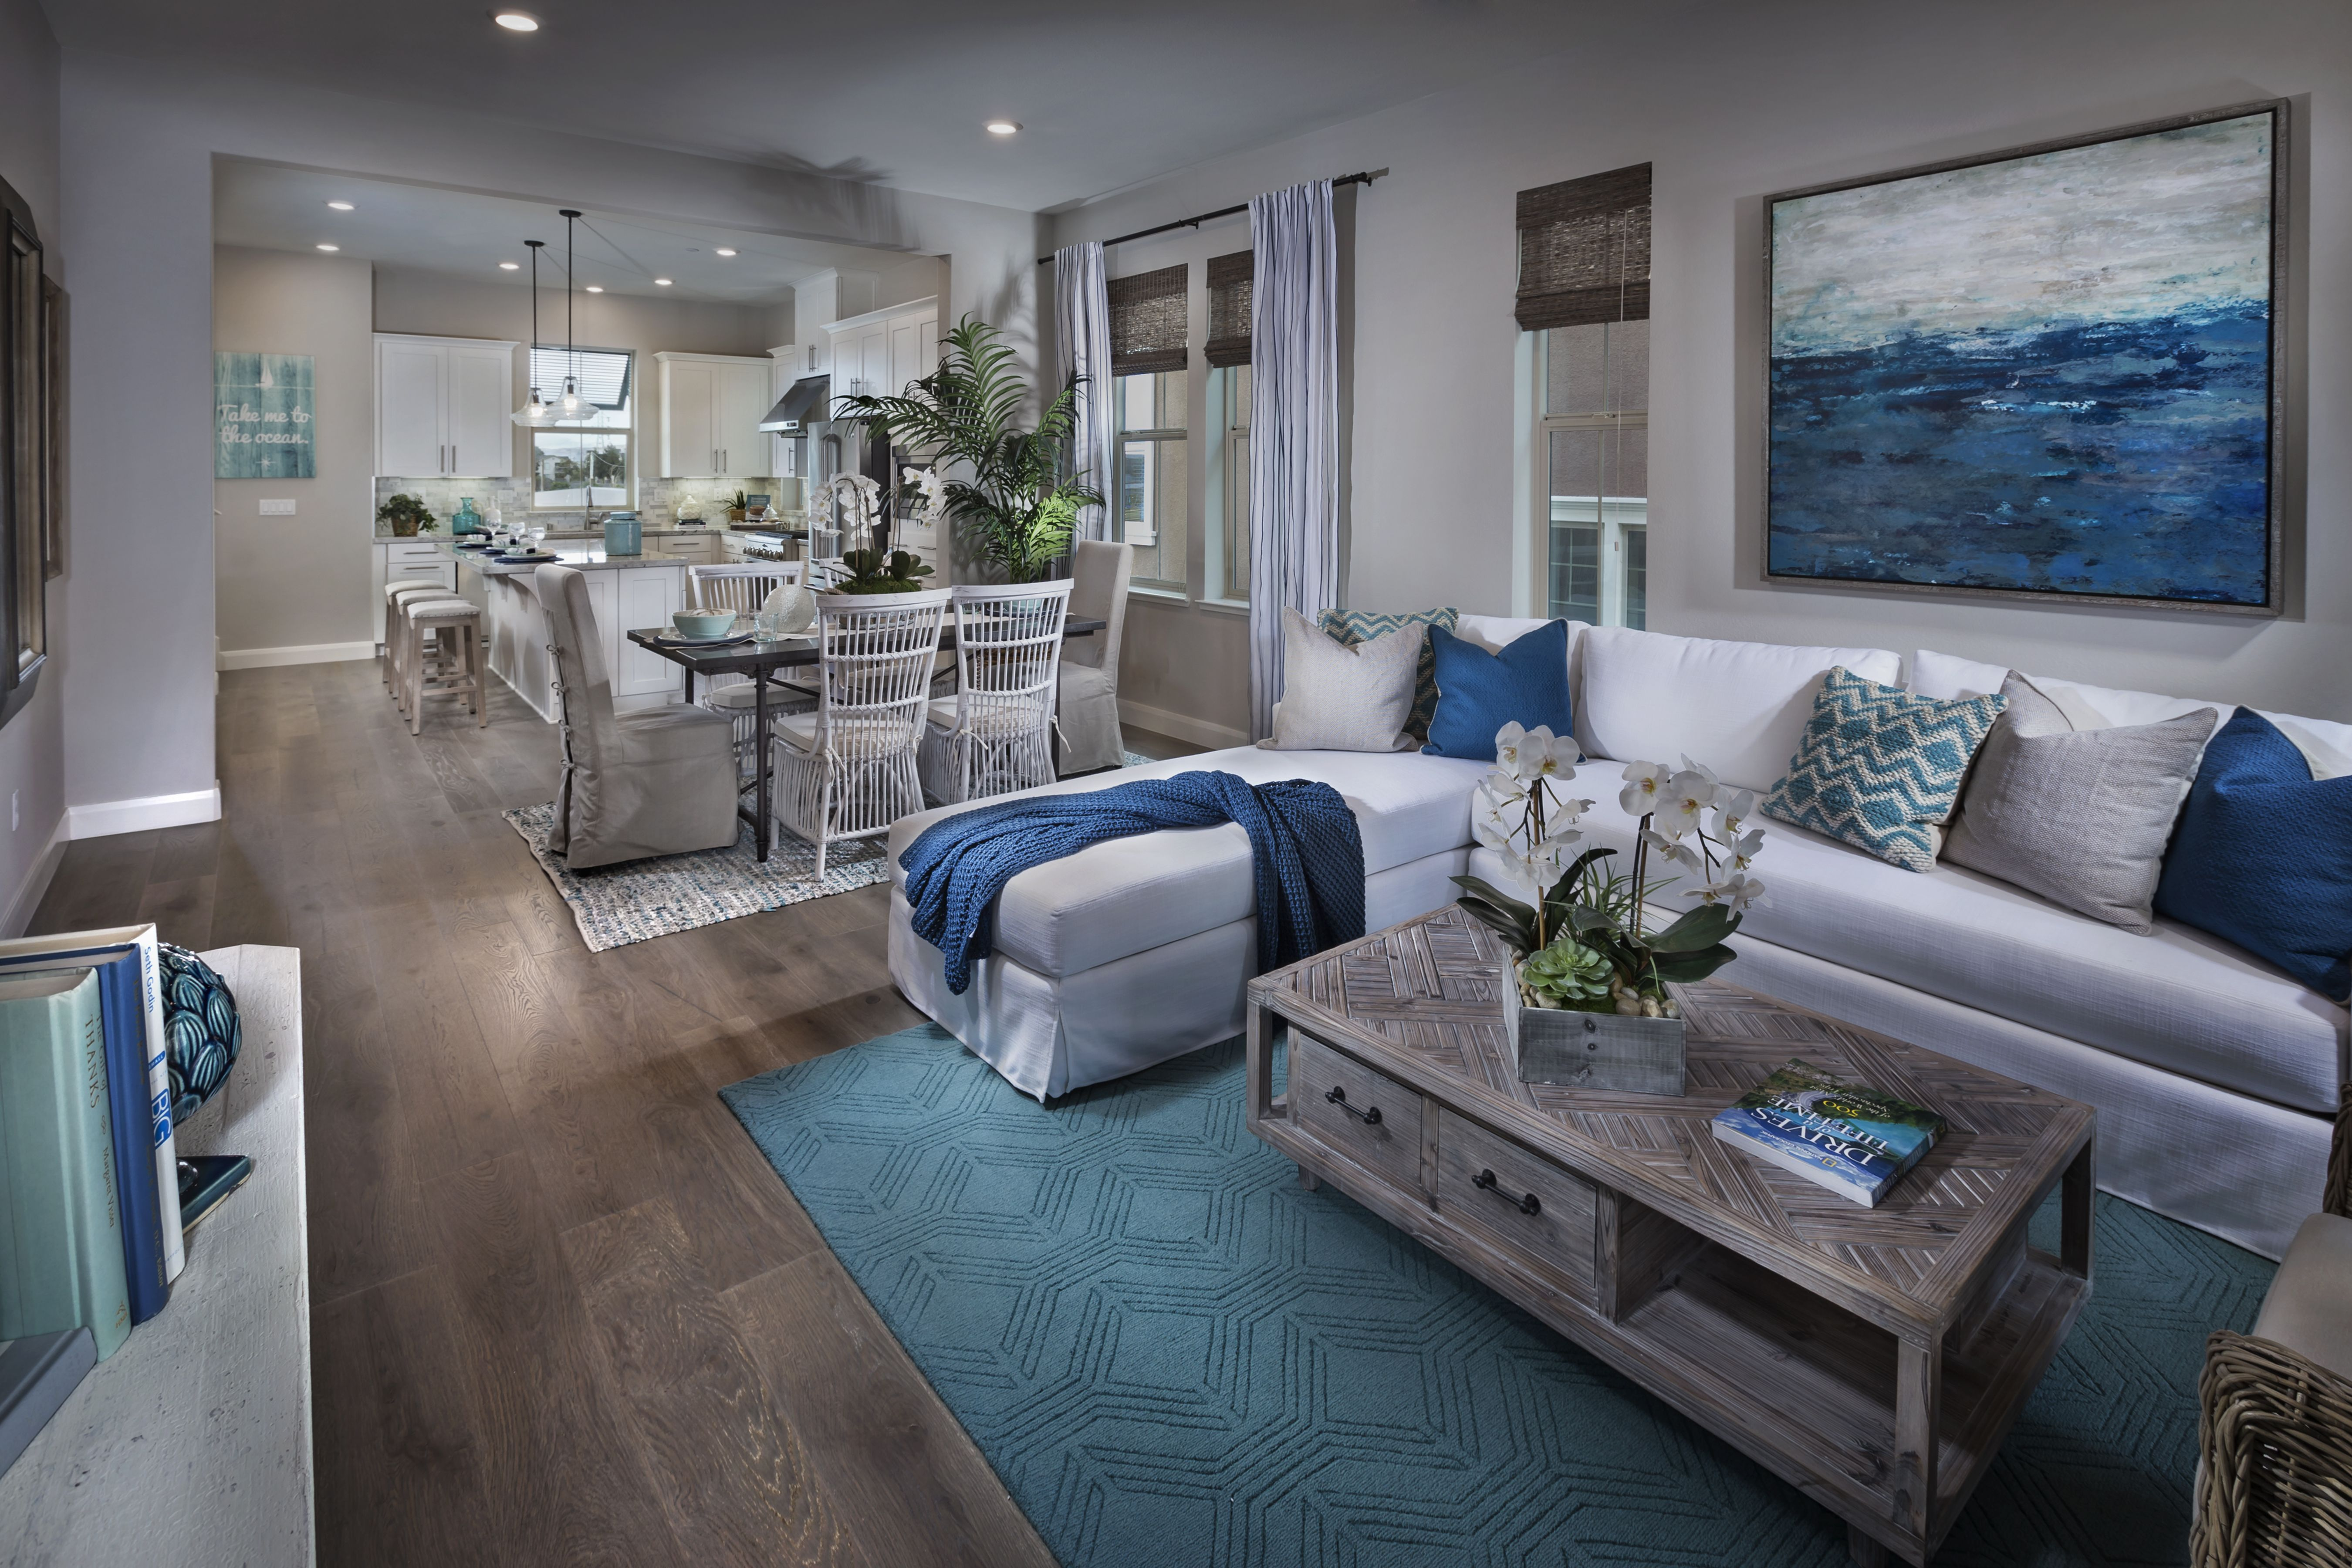 Waterstone In Milpitas By Lennar Bay Area Residence 3 Gorgeous Open Concept Living Area Decorated With Blue Accents Home New Homes Lennar